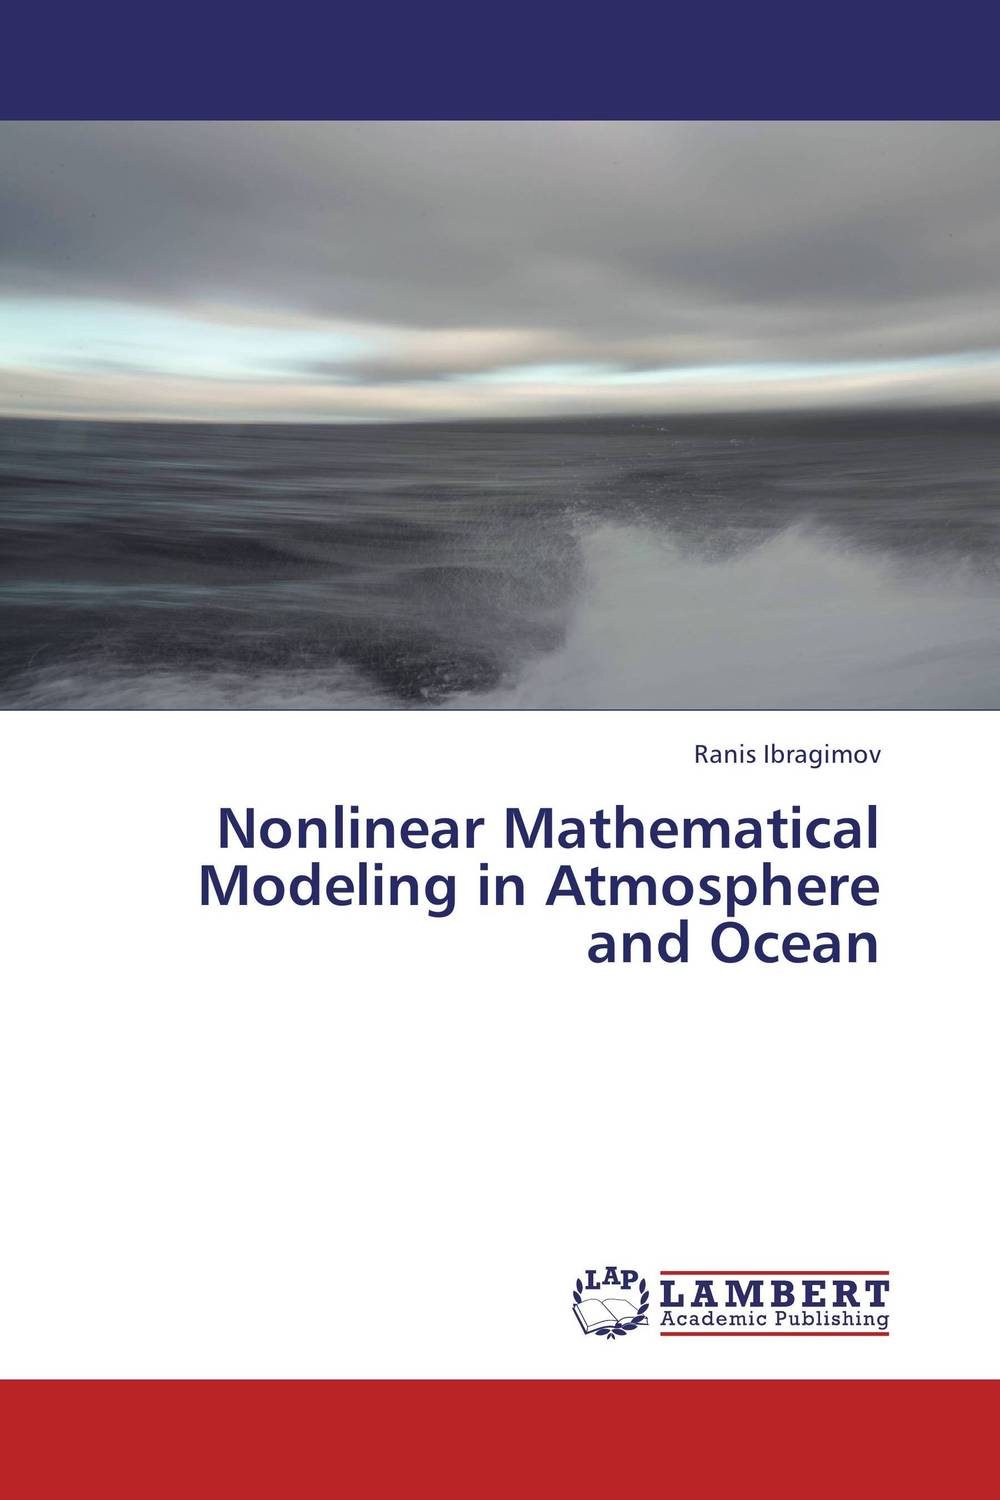 Nonlinear Mathematical Modeling in Atmosphere and Ocean